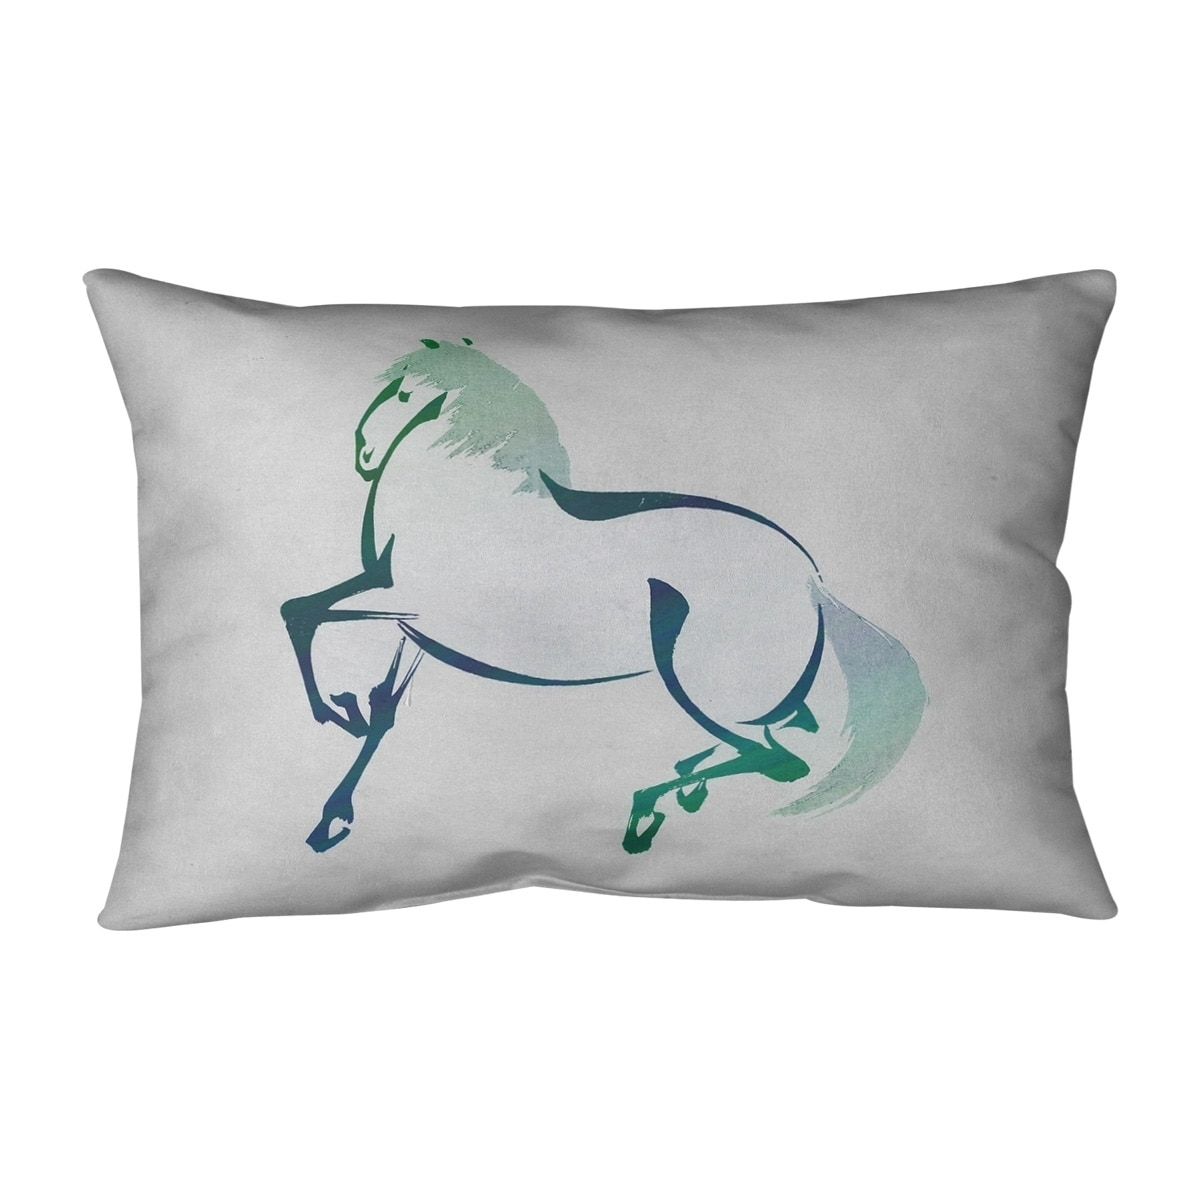 Japanese Vintage Watercolor Horse Outdoor Lumbar Pillow Overstock 28426813